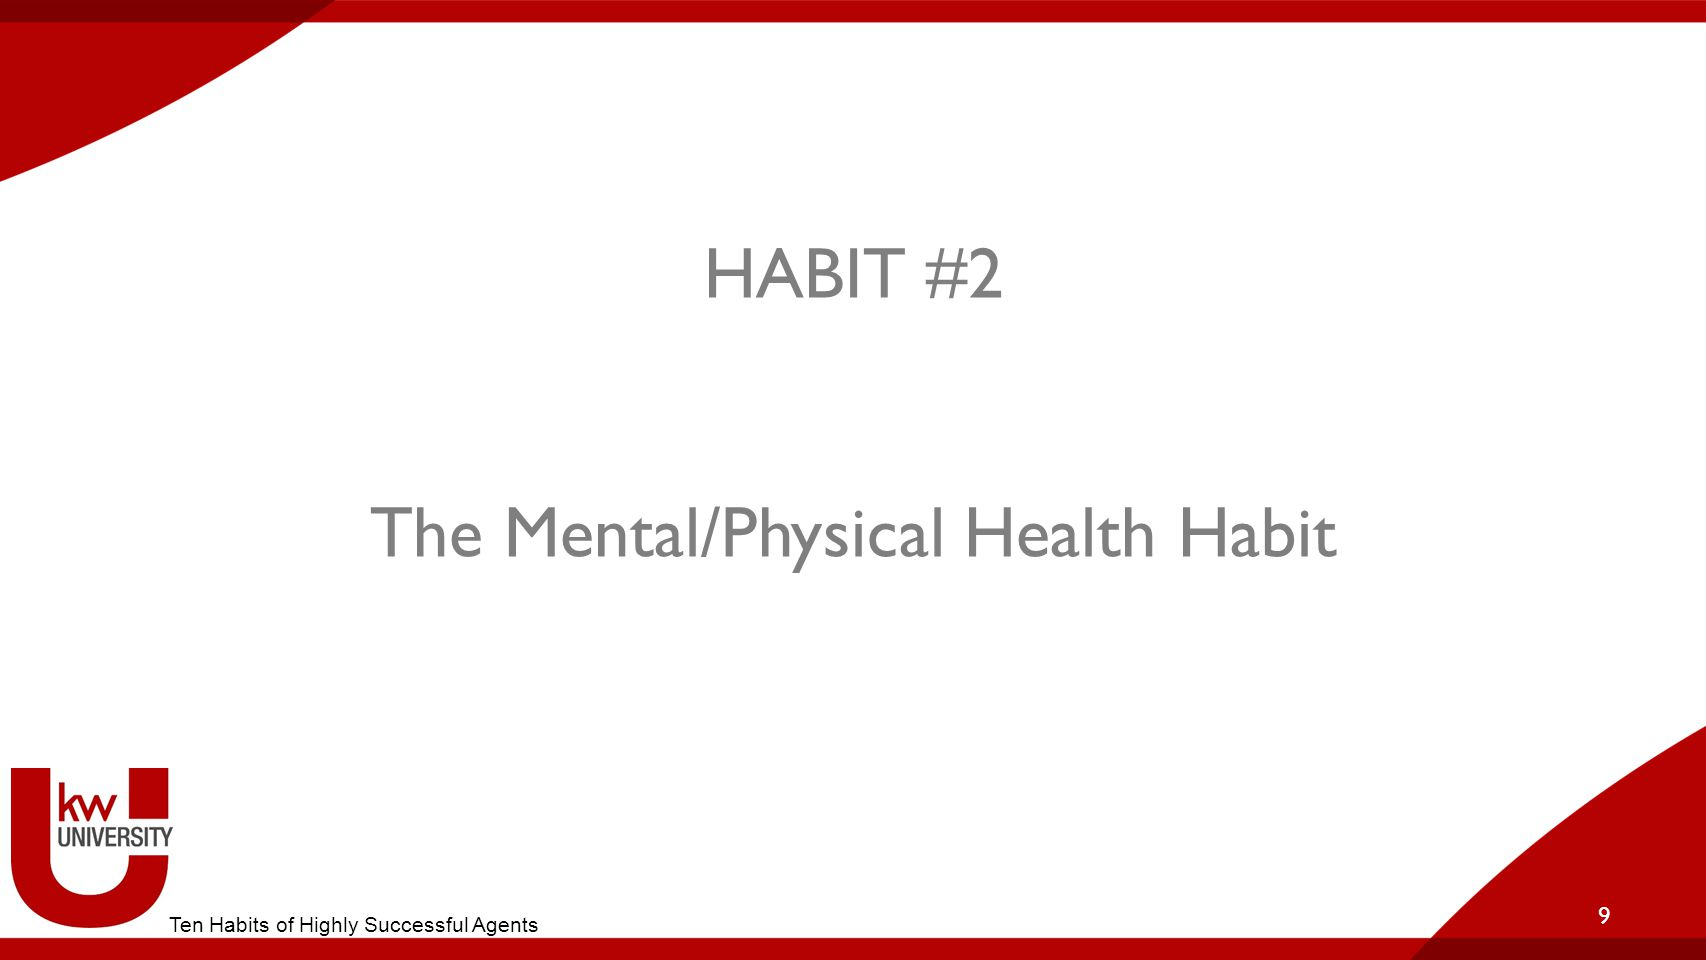 HABIT #2 The Mental/Physical Health Habit